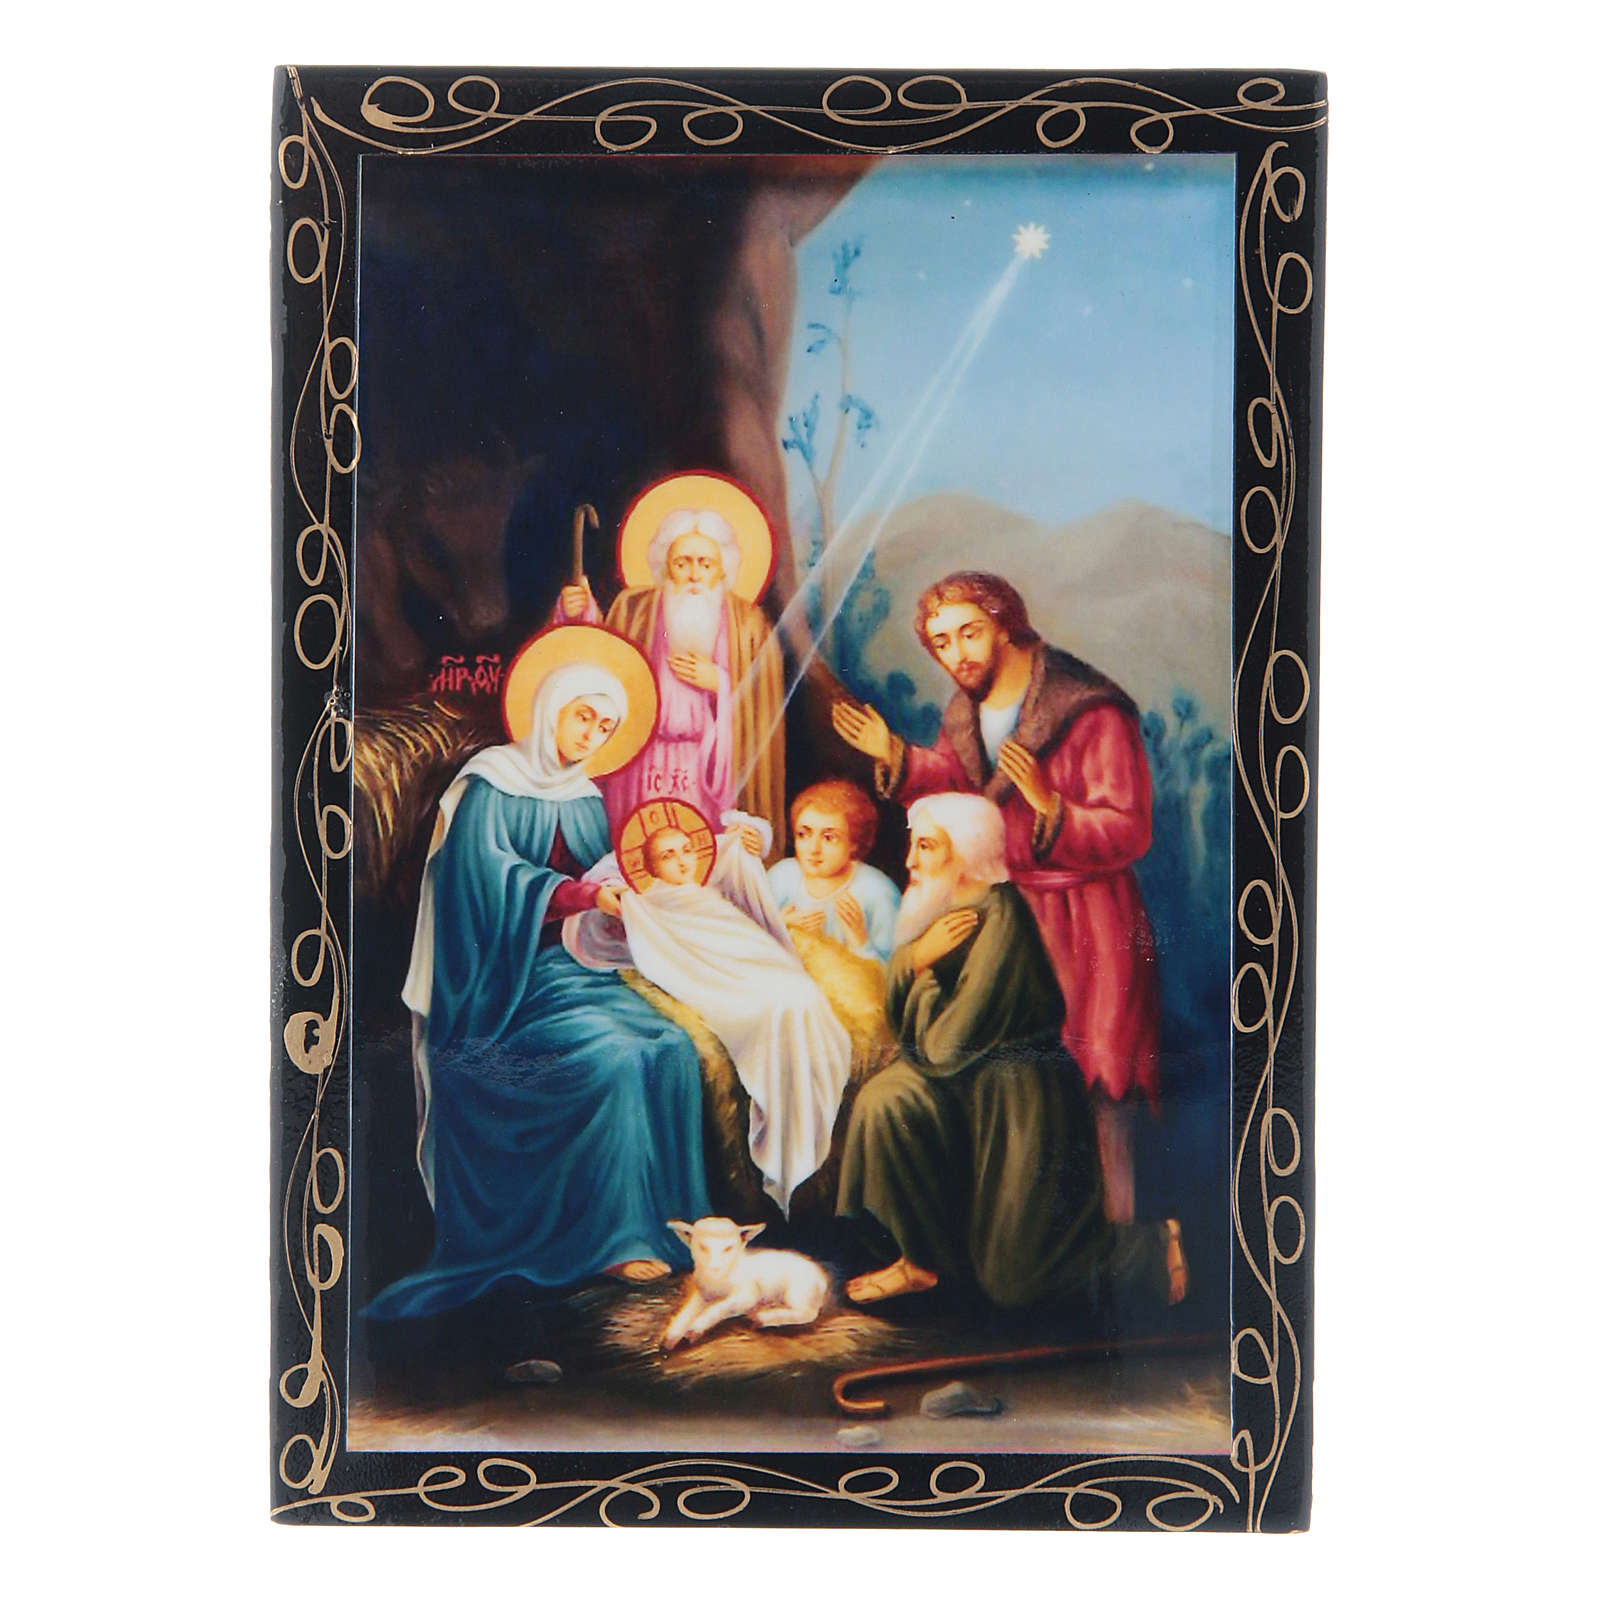 Russian papier-mâché and lacquer painted box The Birth of Jesus Christ 14x10 cm 4